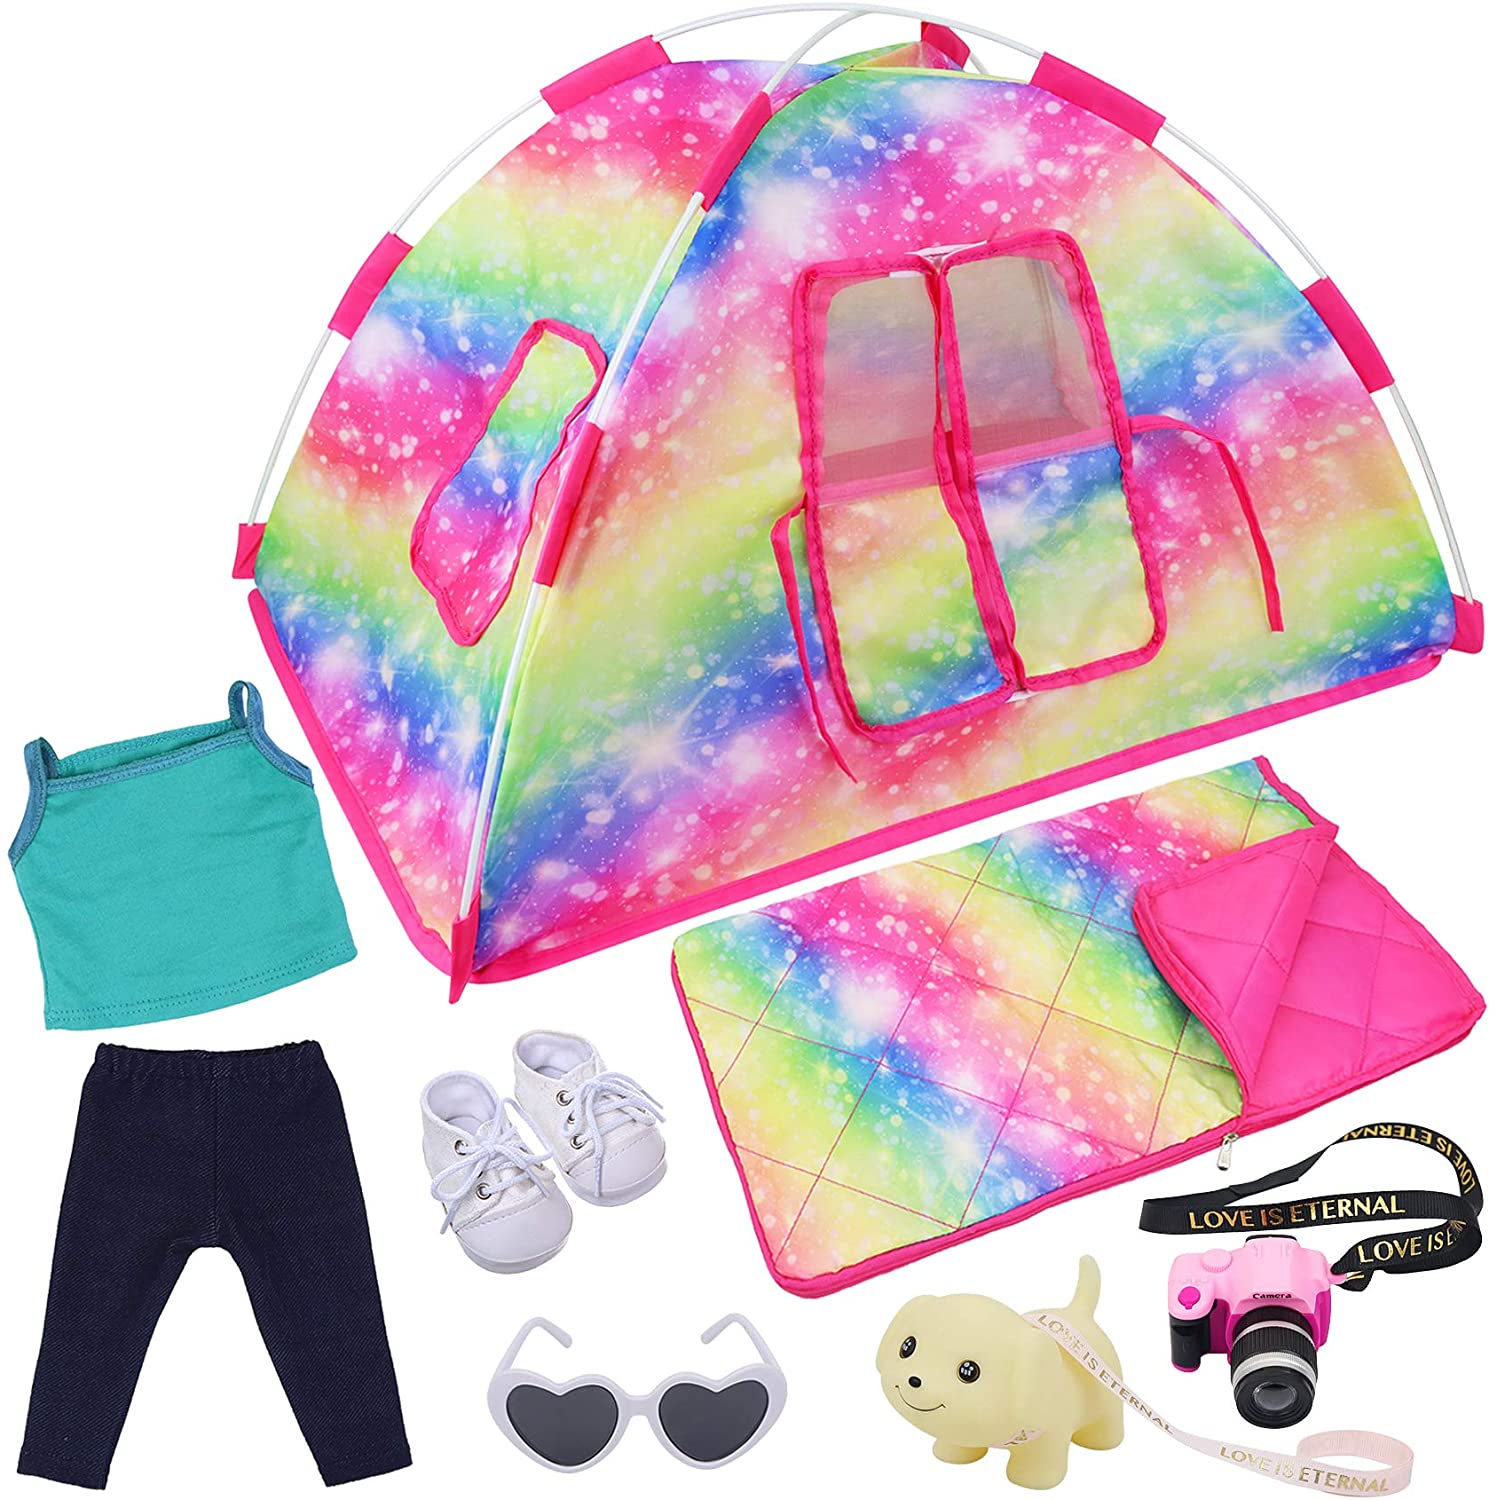 ZITA ELEMENT 7 Items Fashion Doll Choice Set Tent American Camping for low-pricing